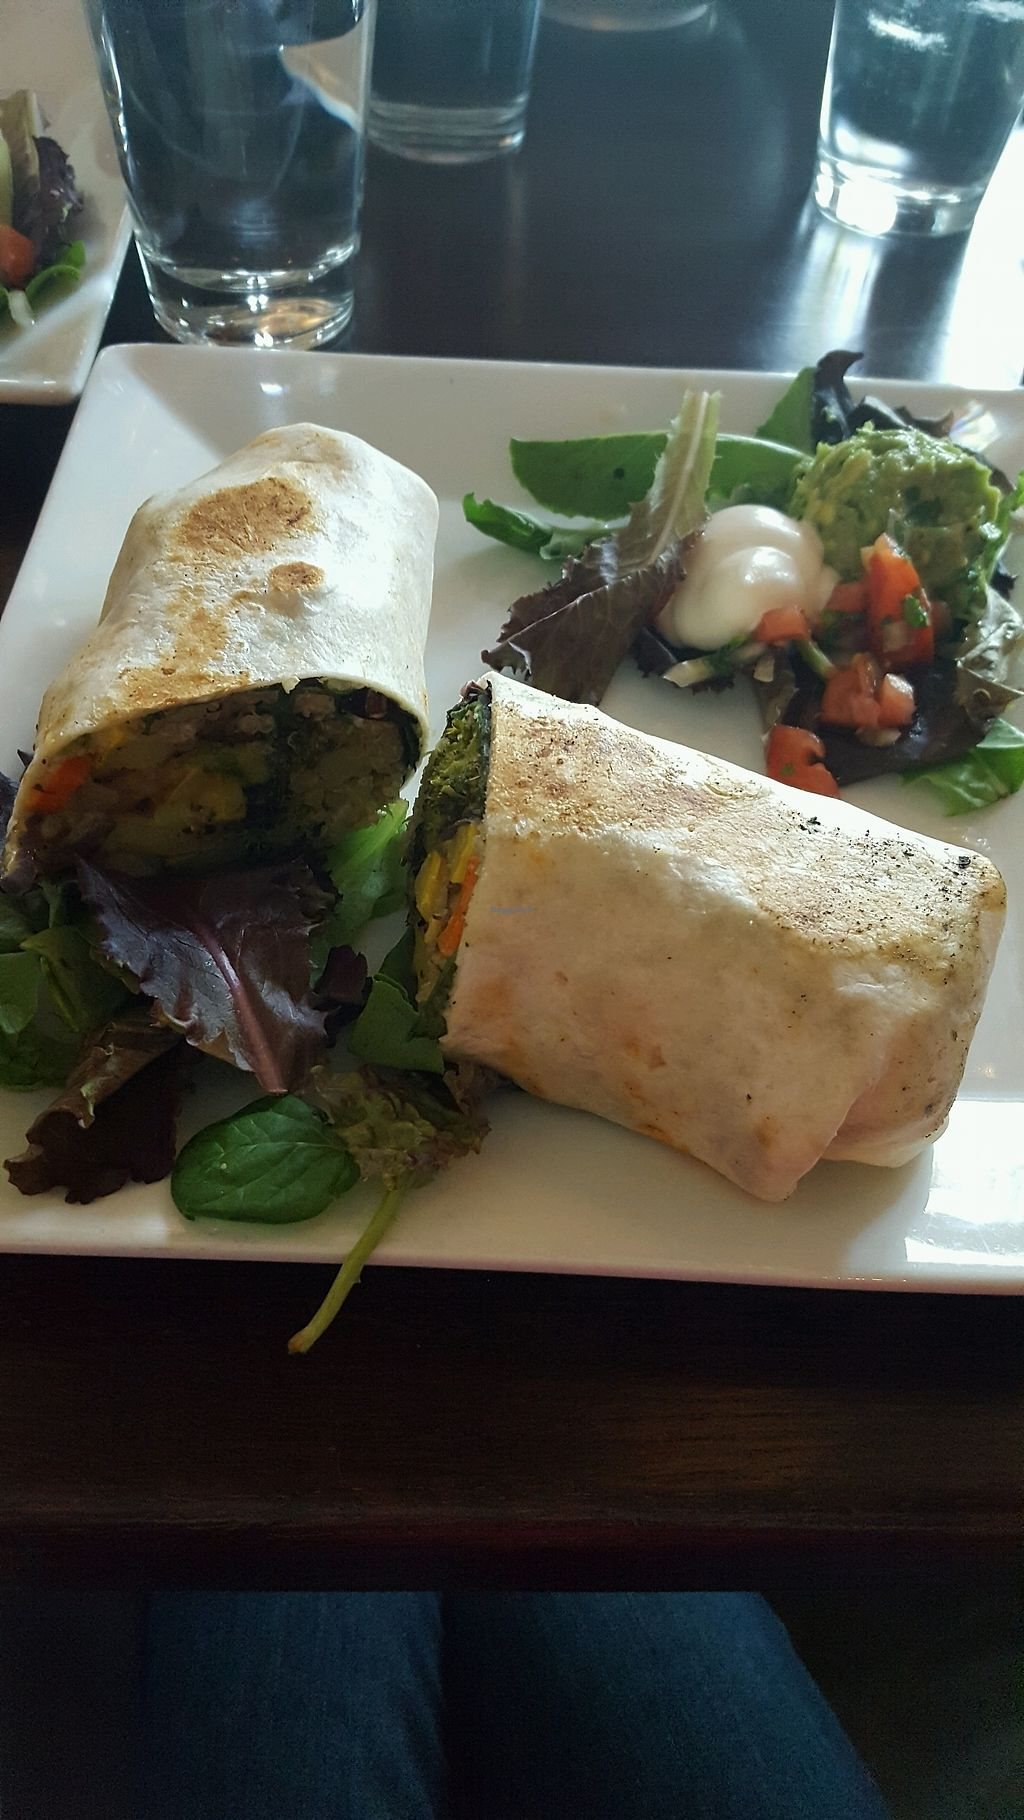 """Photo of Graze  by <a href=""""/members/profile/Scott%26Jen"""">Scott&Jen</a> <br/>Root Veggie Burrito at Sunday brunch - delicious!  <br/> September 5, 2017  - <a href='/contact/abuse/image/73189/301168'>Report</a>"""